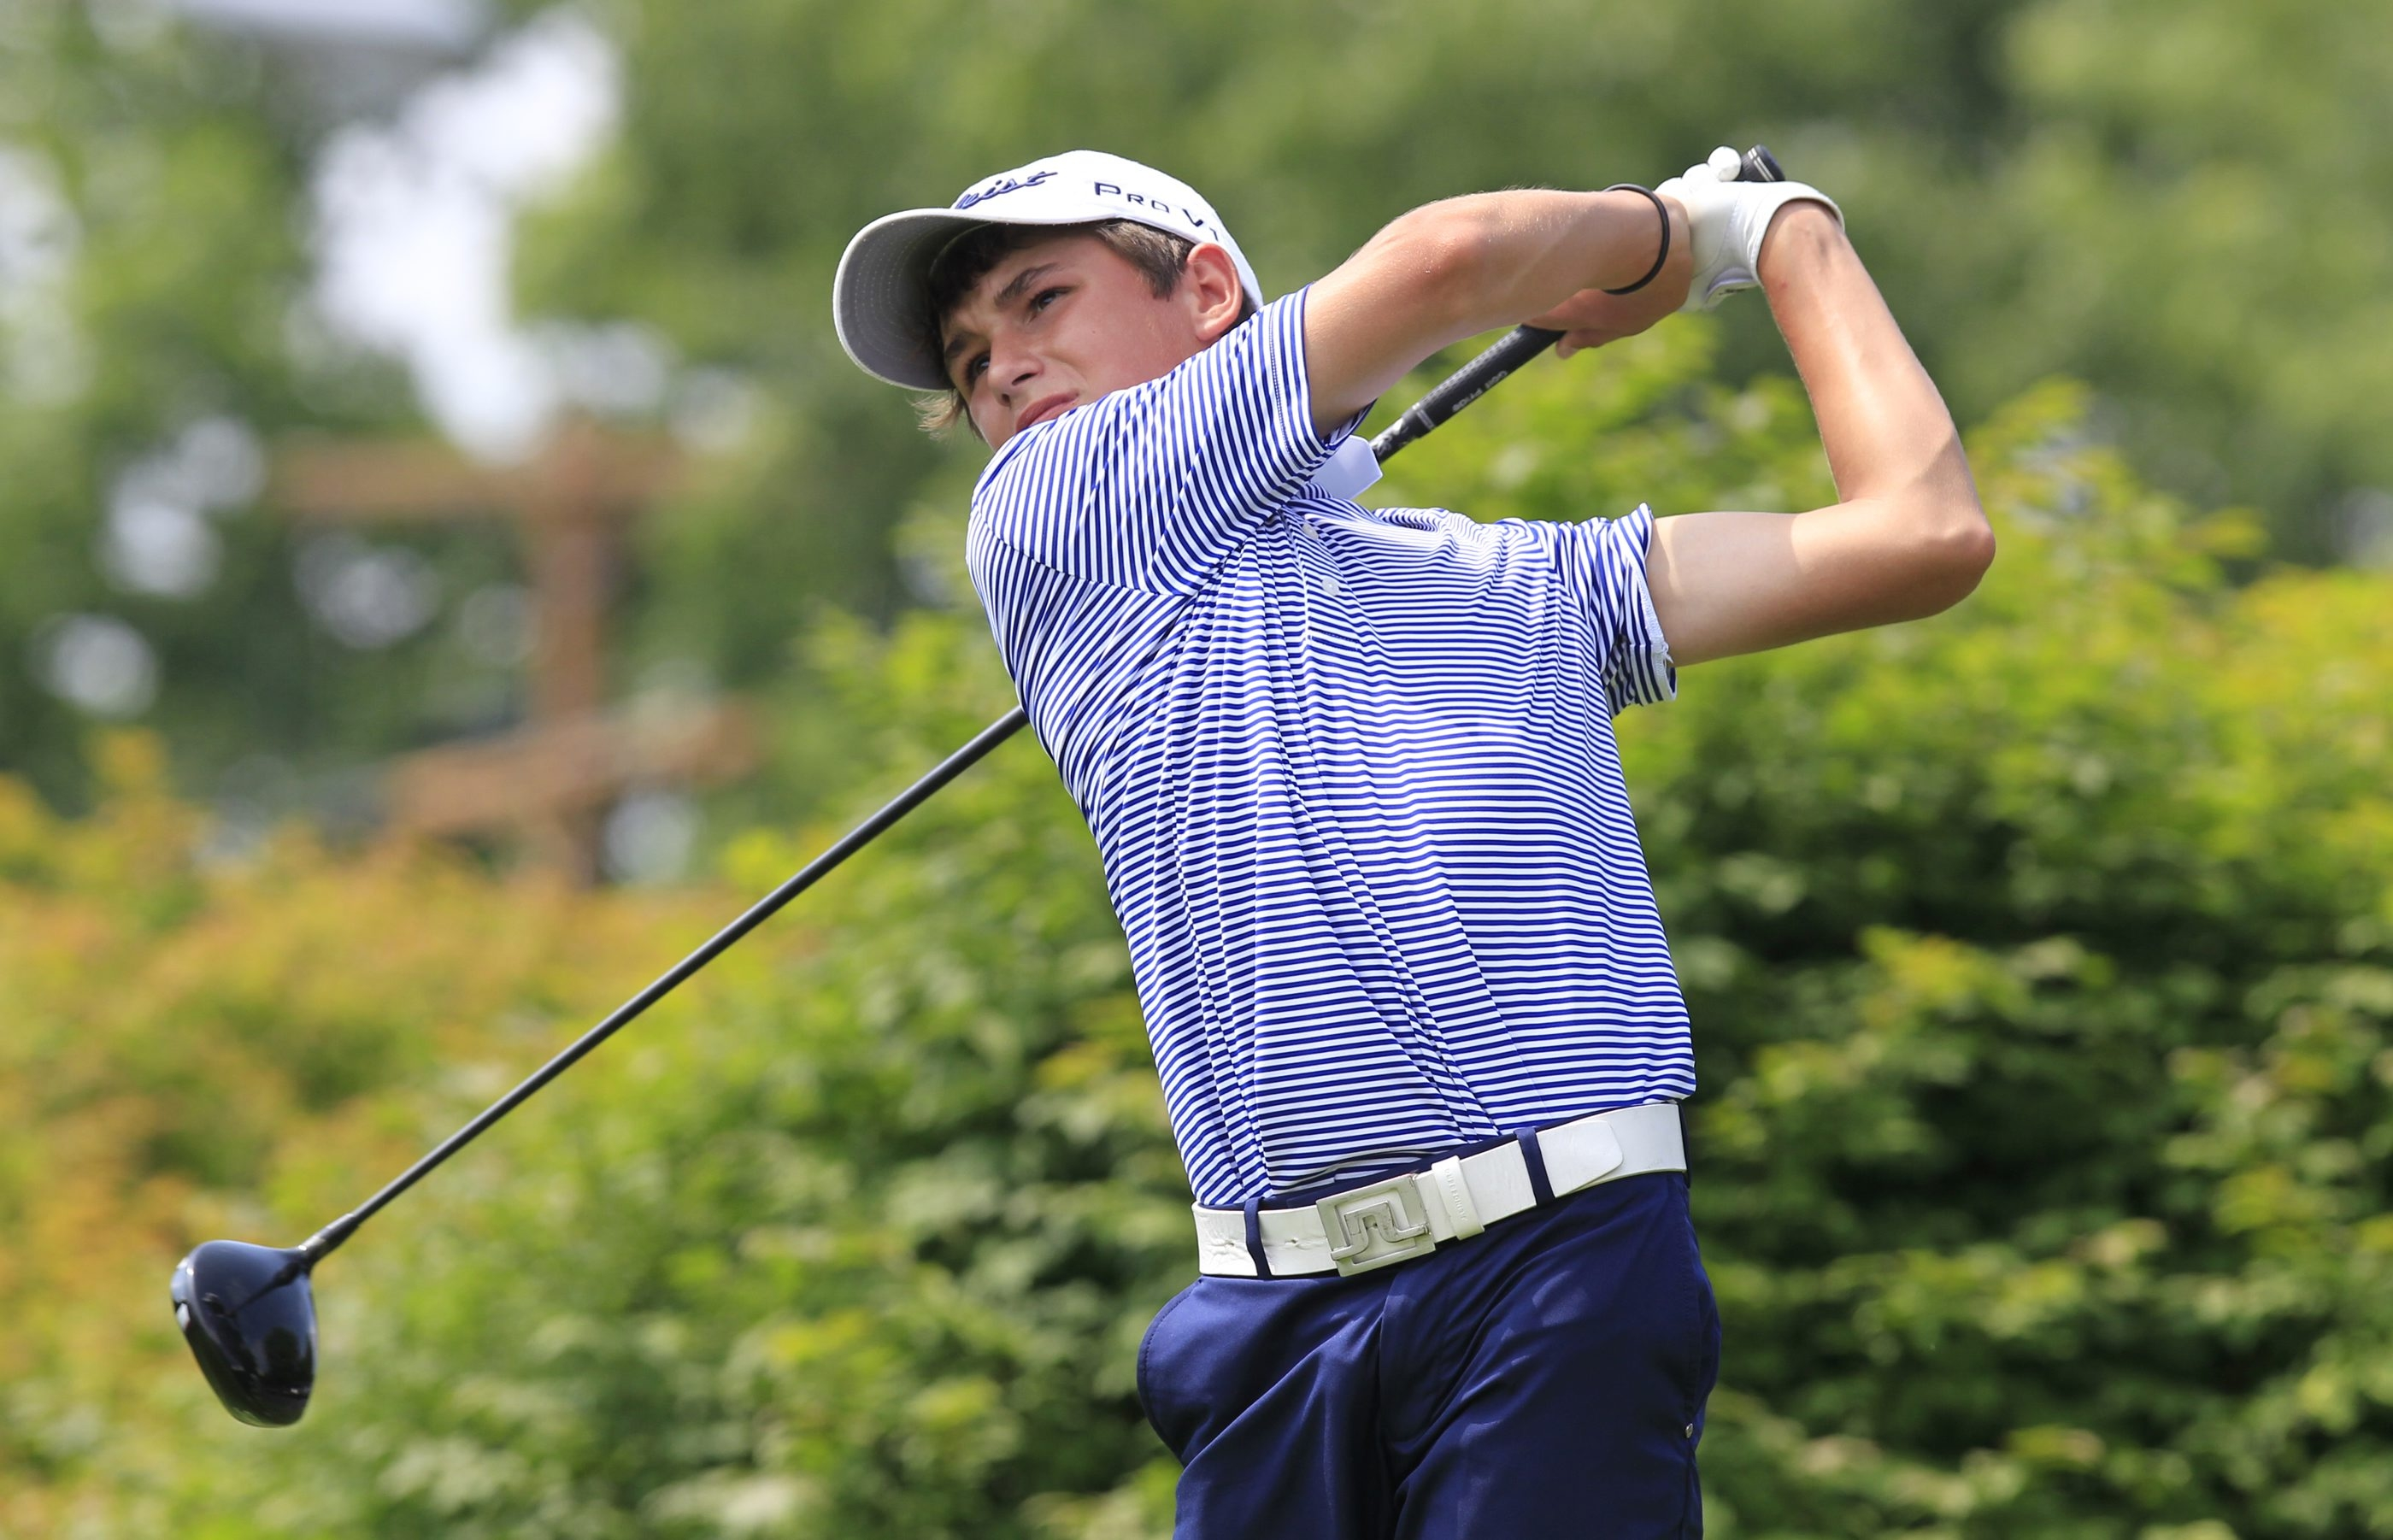 Will Thomson of Fairport will try to become the first repeat winner of the International Junior Masters since Briny Baird in 1989.